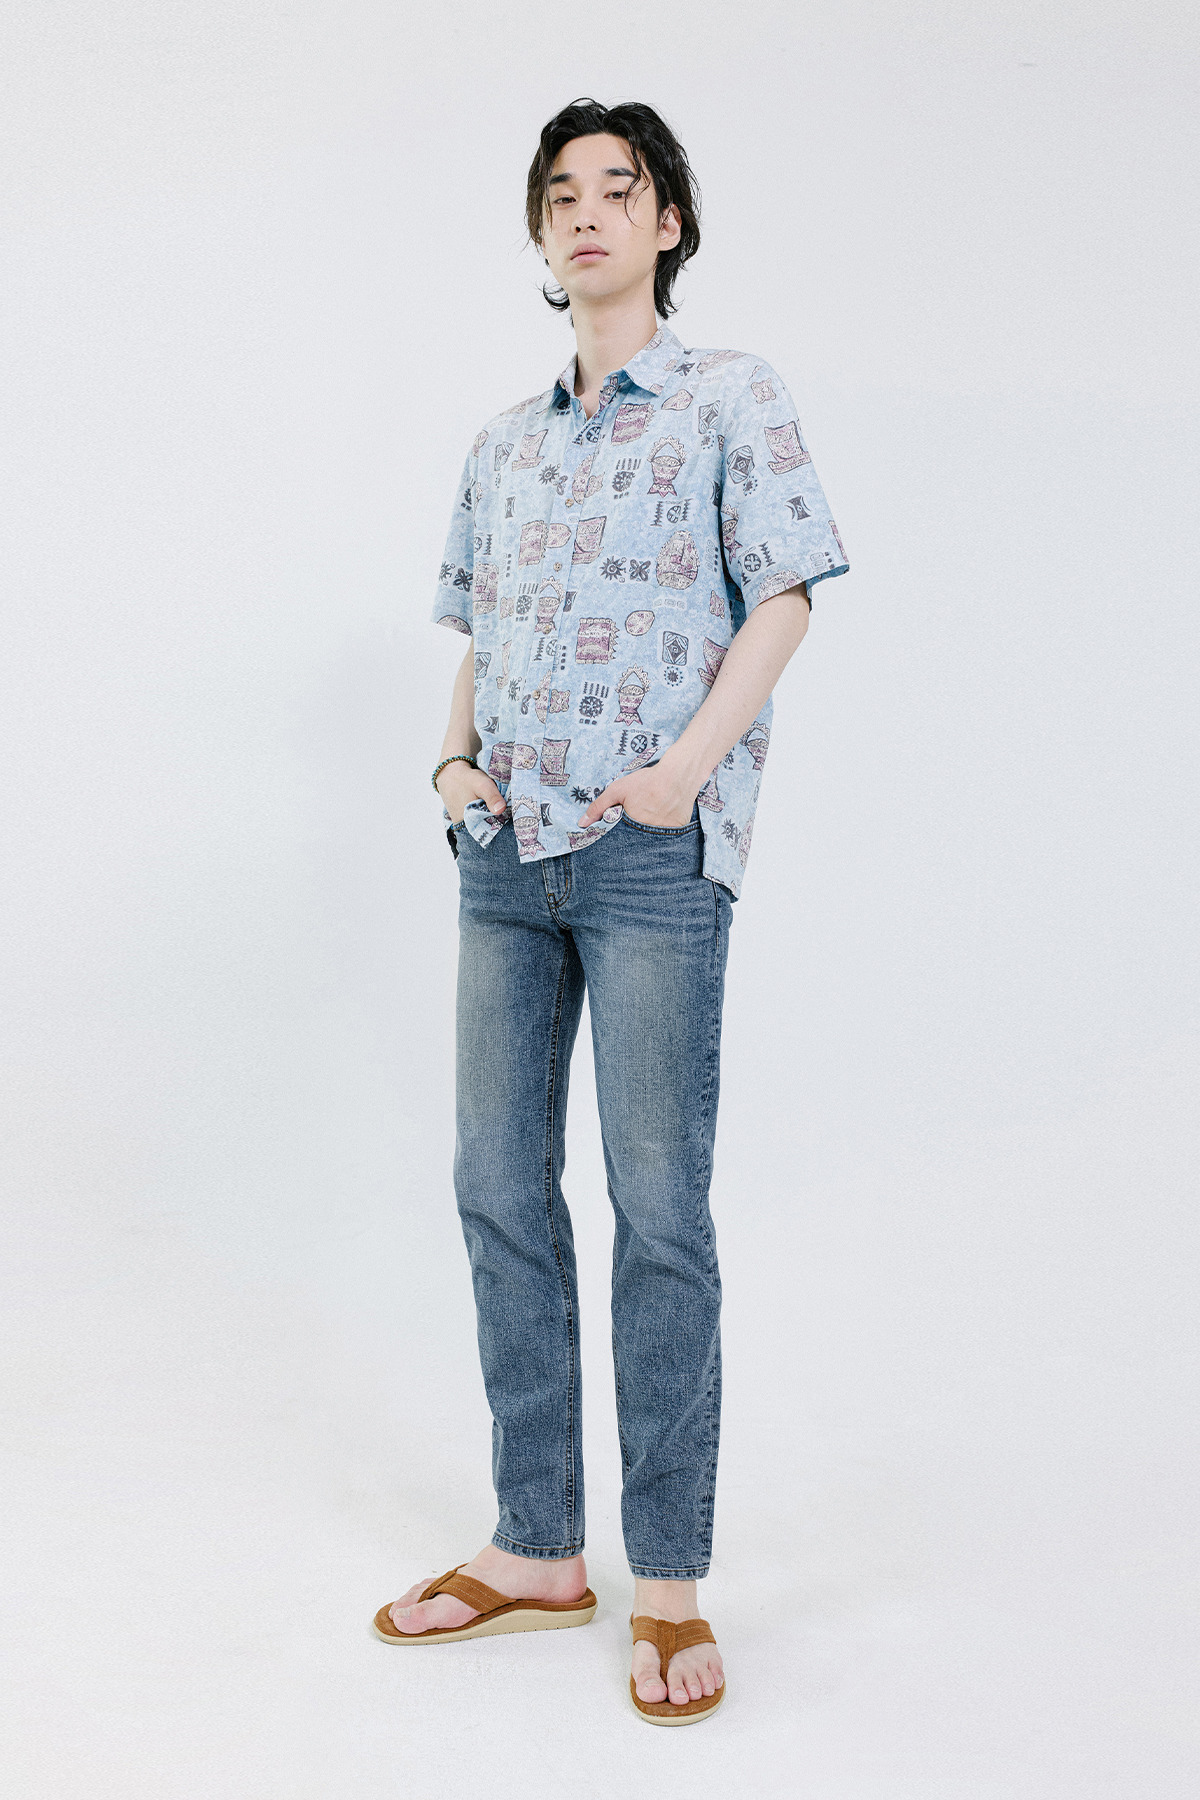 페이탈리즘 #0085 greysh blue crop jeans